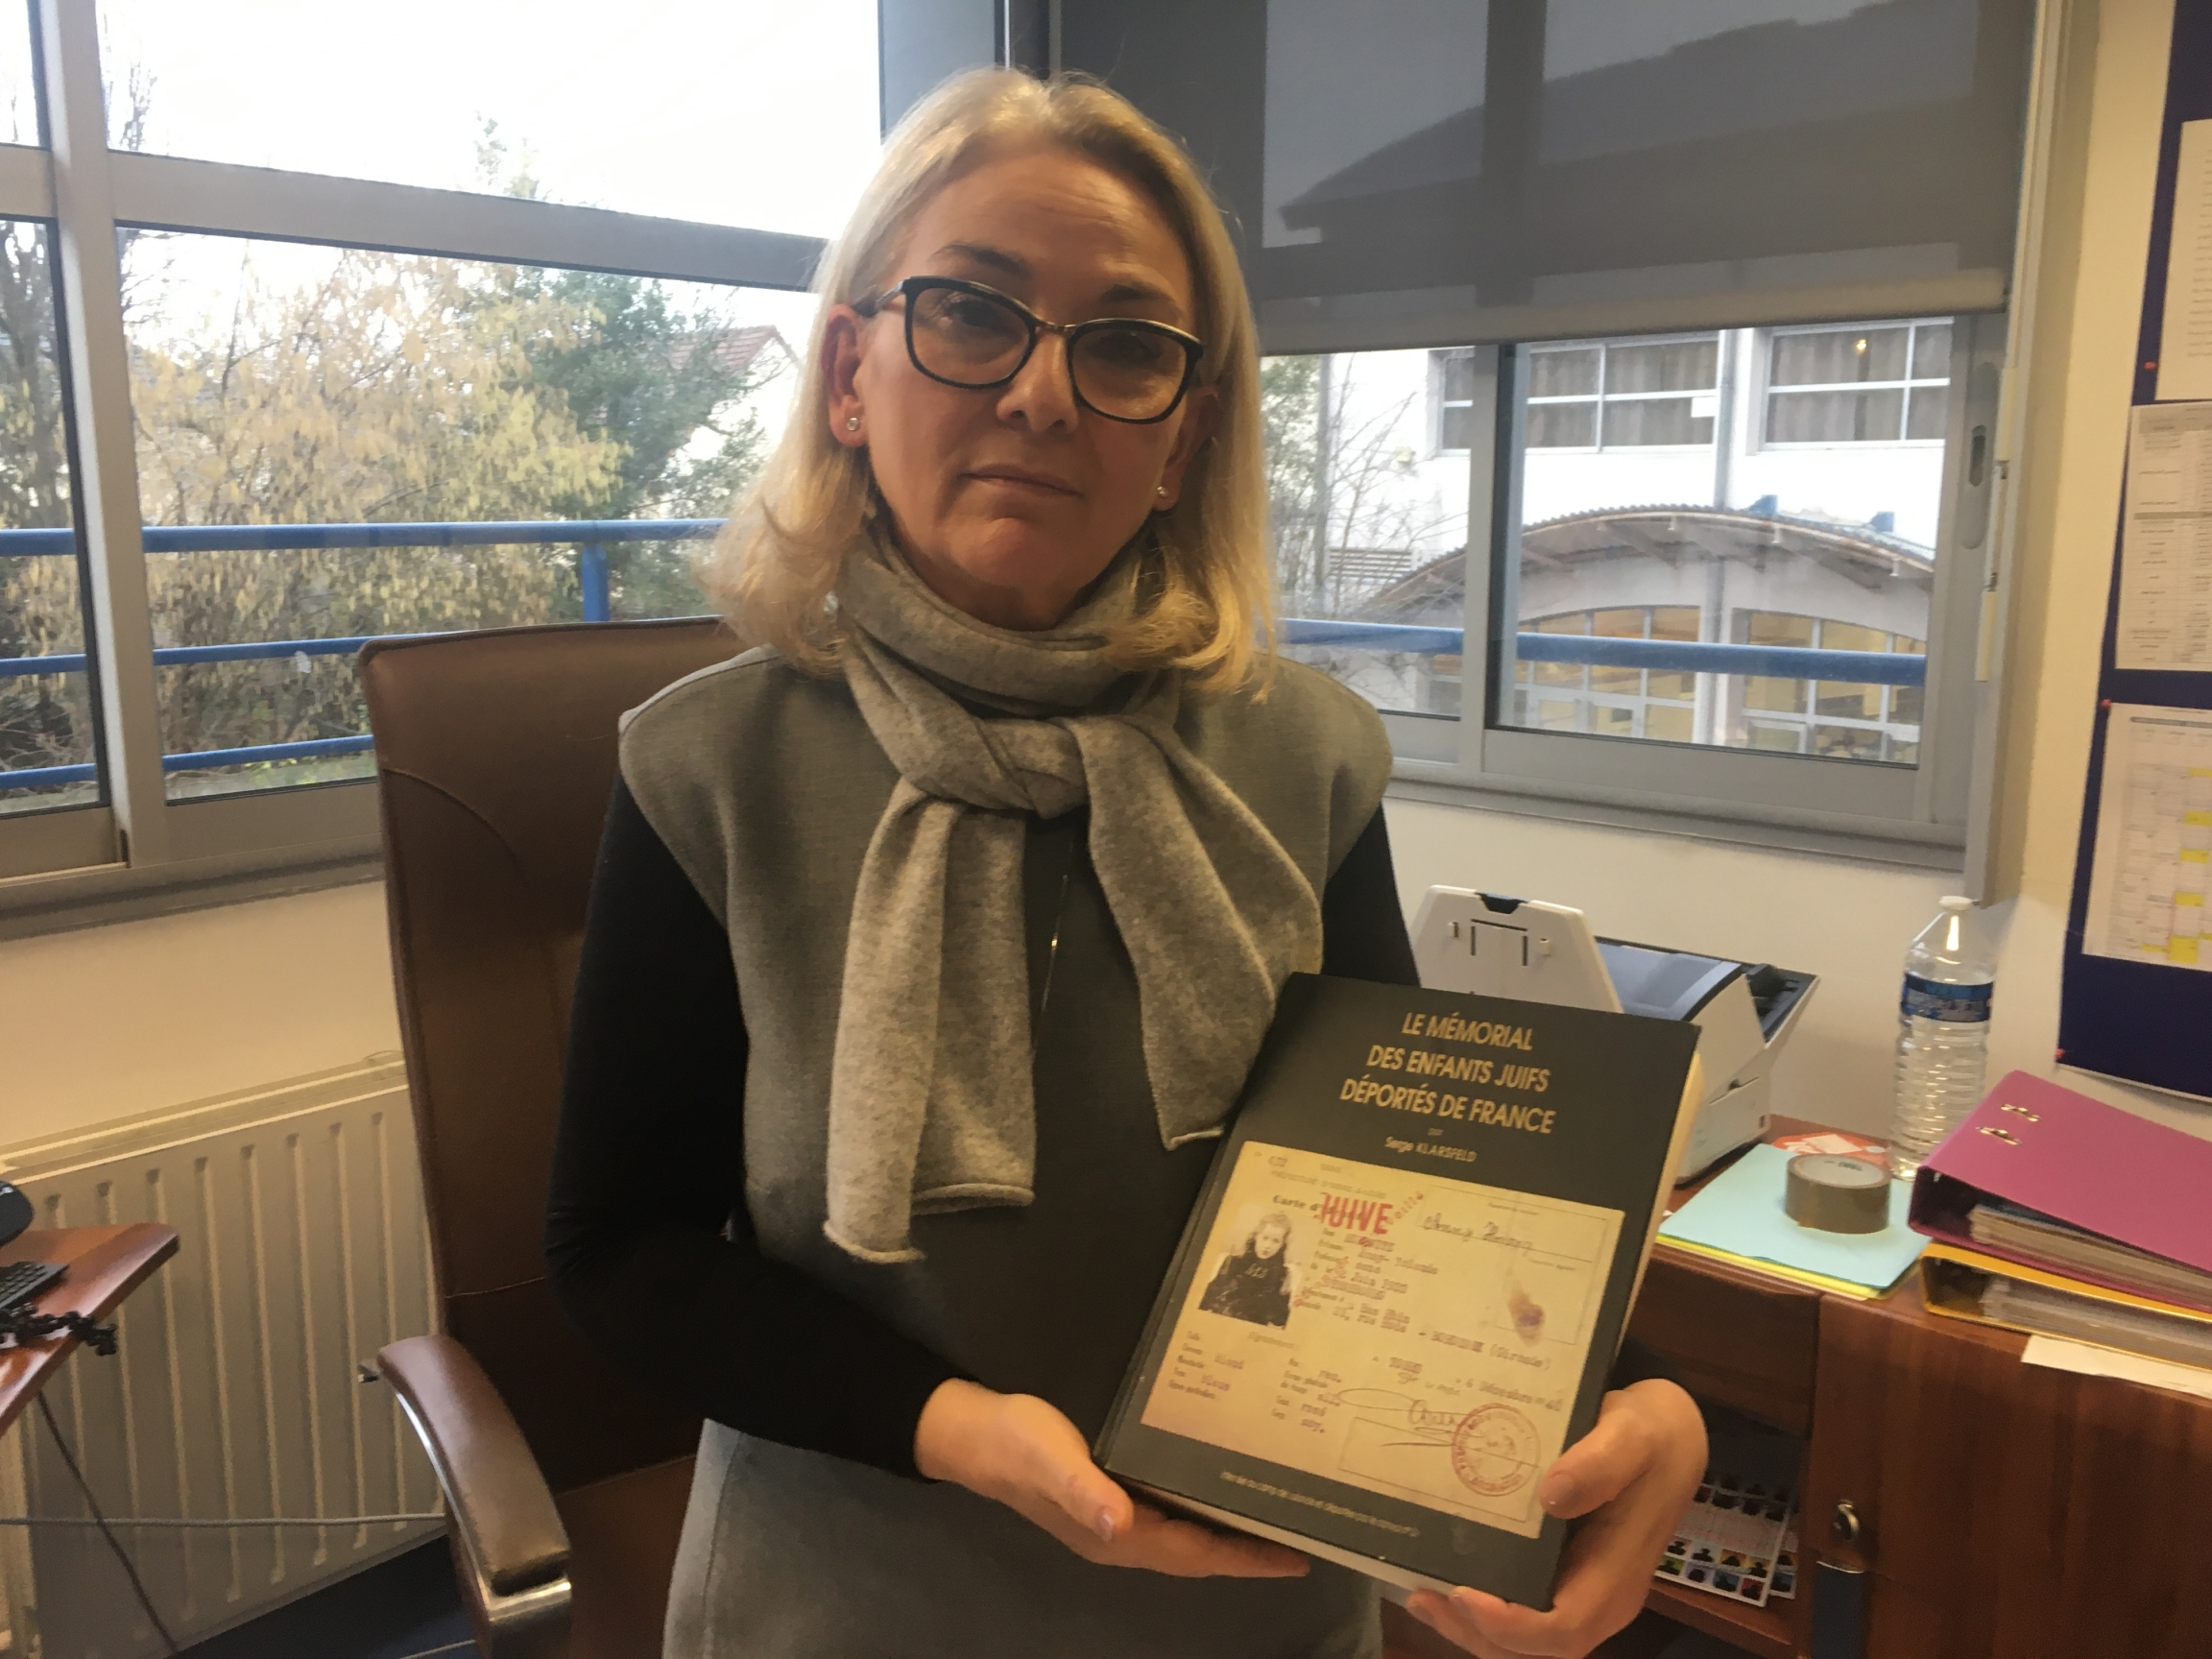 Sarah-Laure Attias, the director of a private Jewish school on the outskirts of Paris, holds a book listing the names of every Jewish child deported from France during World War II. Attias says students at her school need to be extra prepared when it come